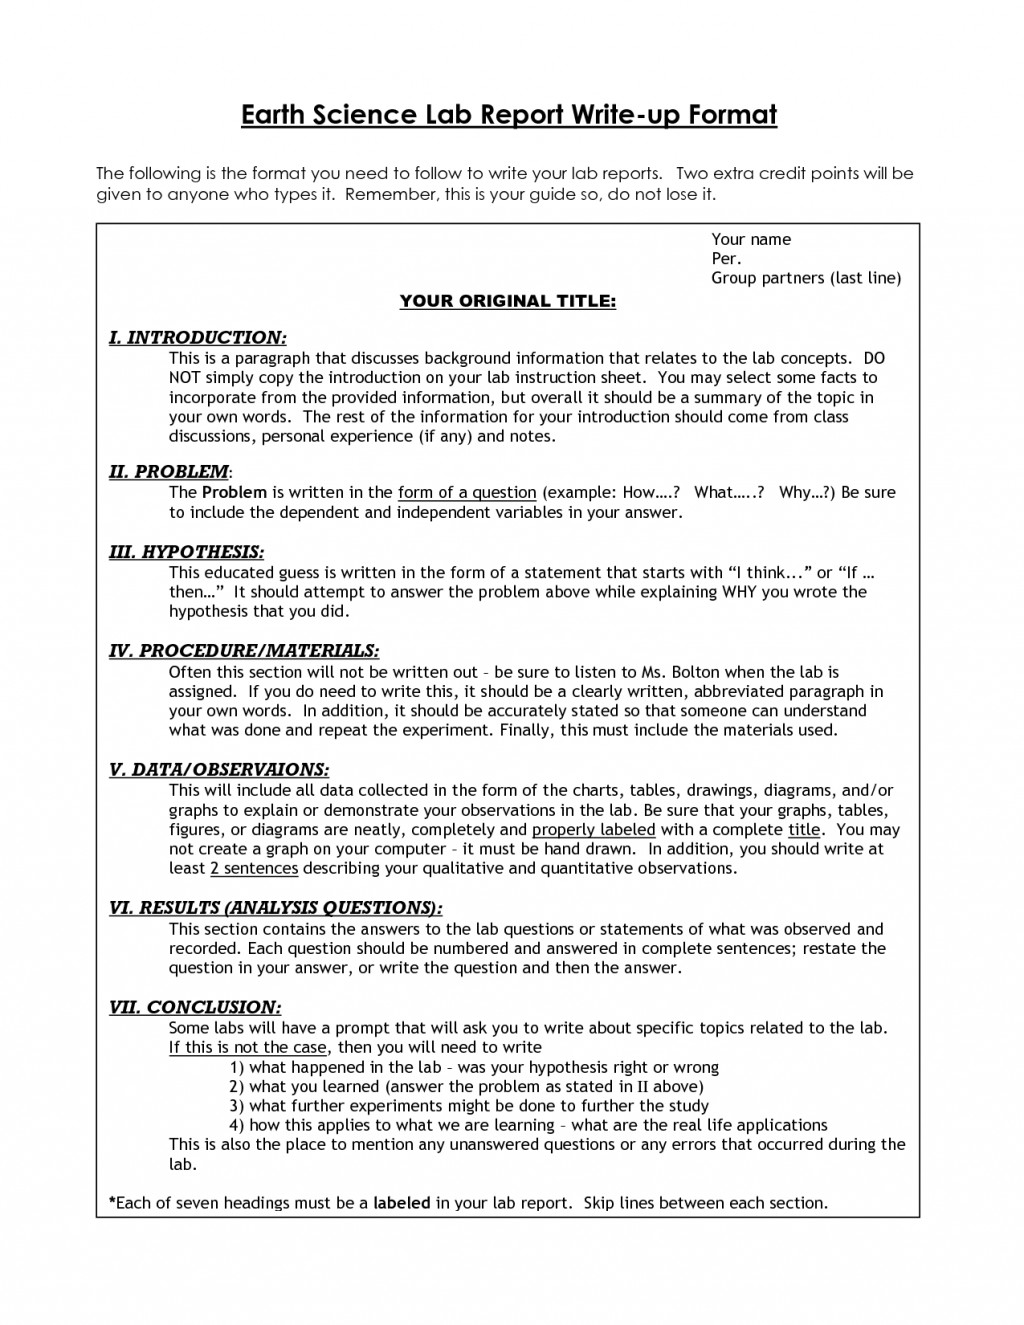 006 Pay For Research Paper Excellent Equal Work In India Performance Writing Large